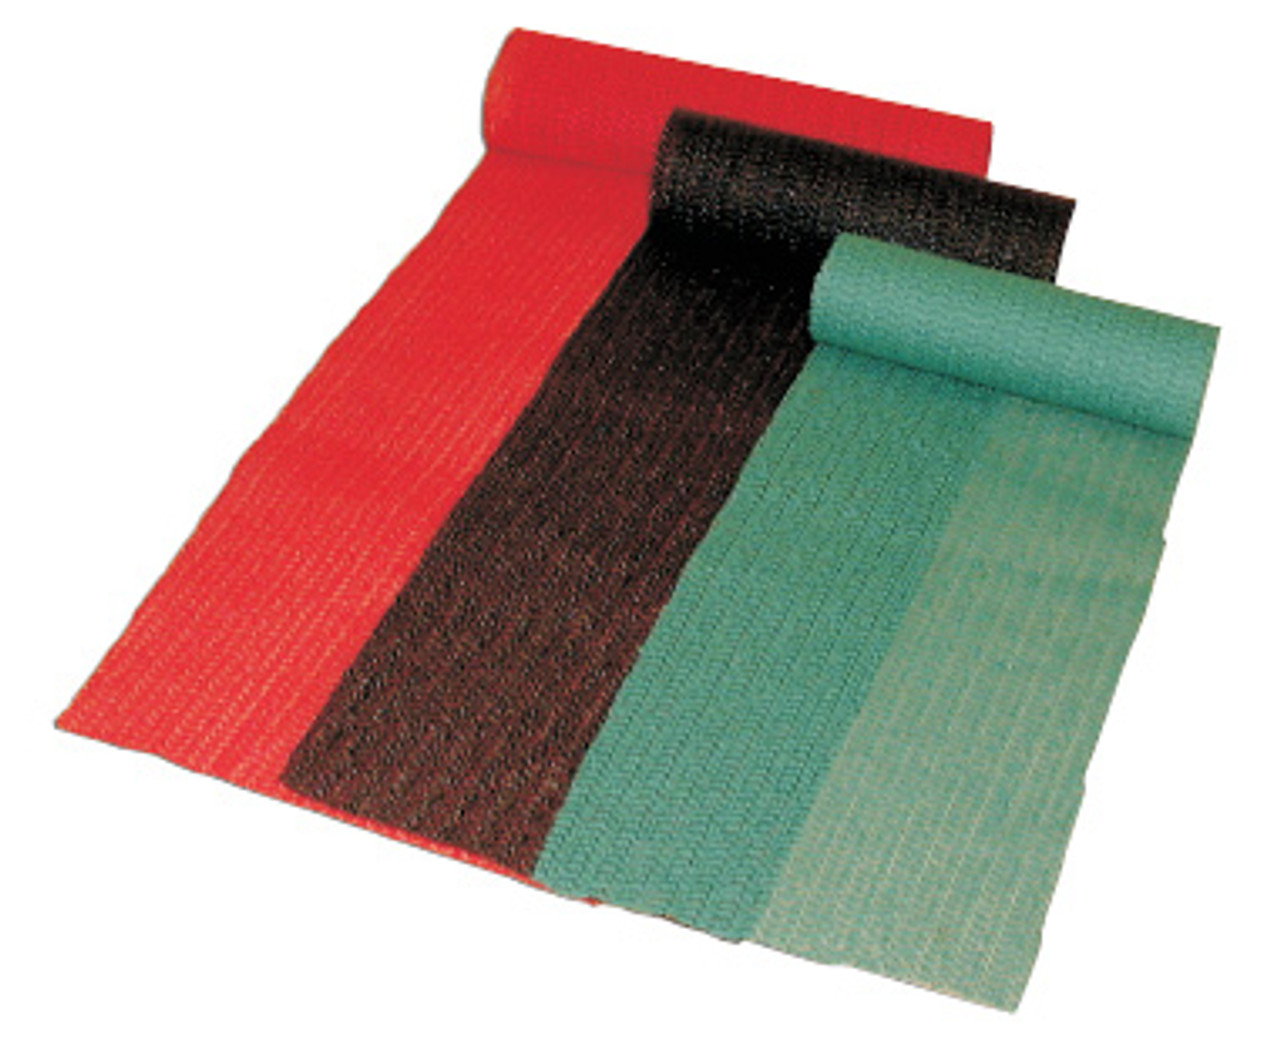 Sure Grip Meat & Produce Case Liner - Green, Red & Black